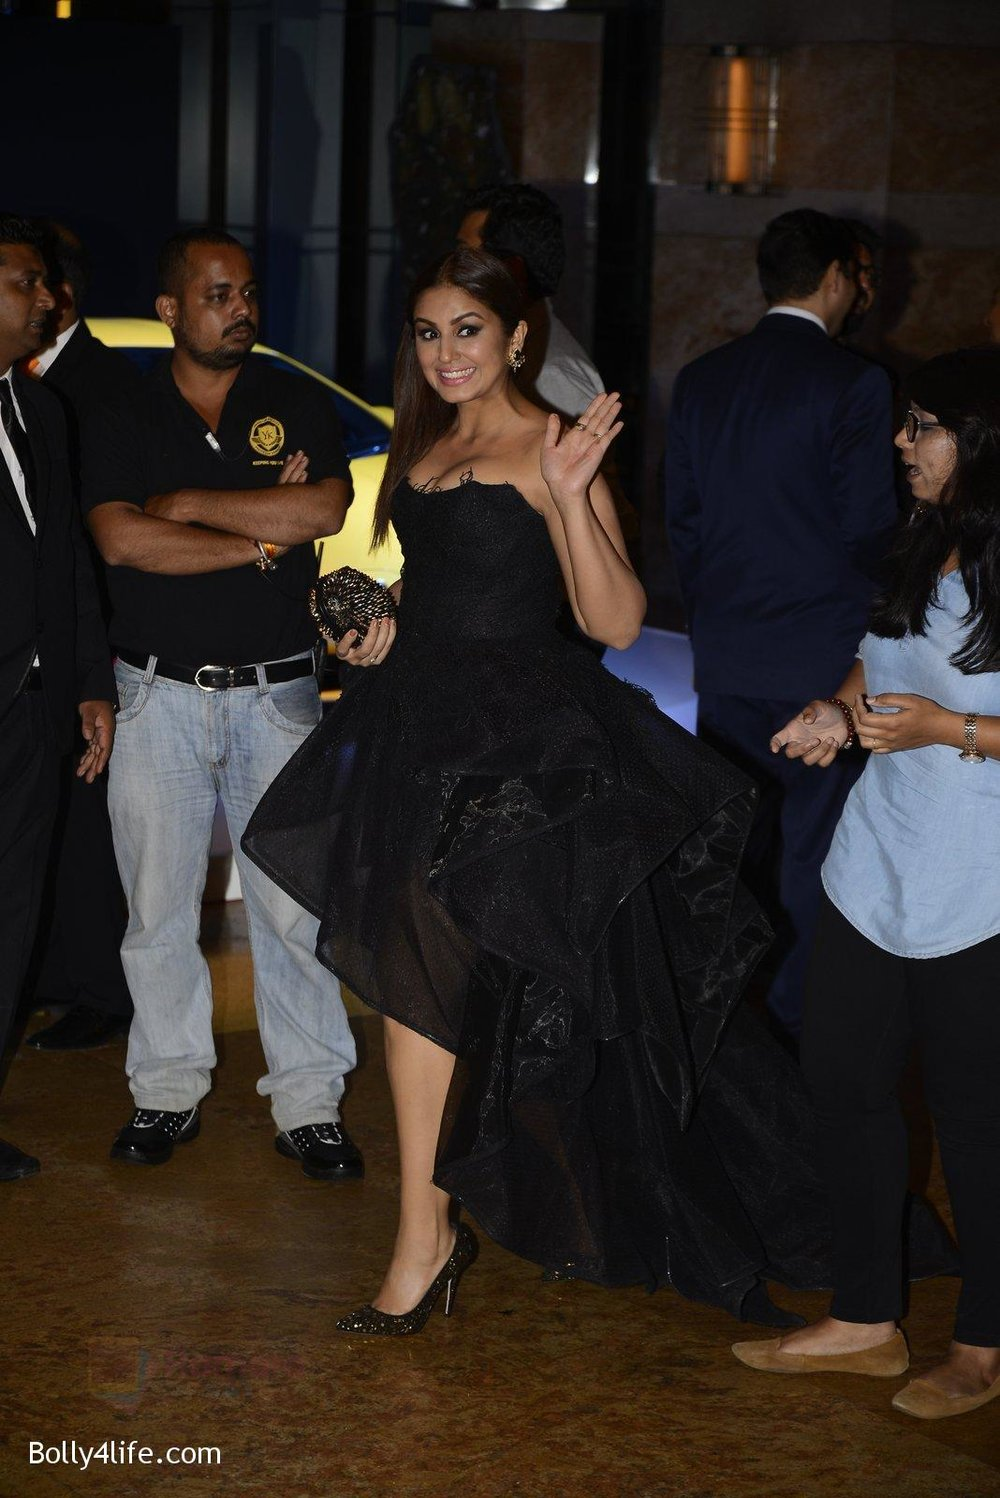 Huma-Qureshi-at-GQ-MEN-OF-THE-YEAR-on-27th-Sept-2016-1169.jpg